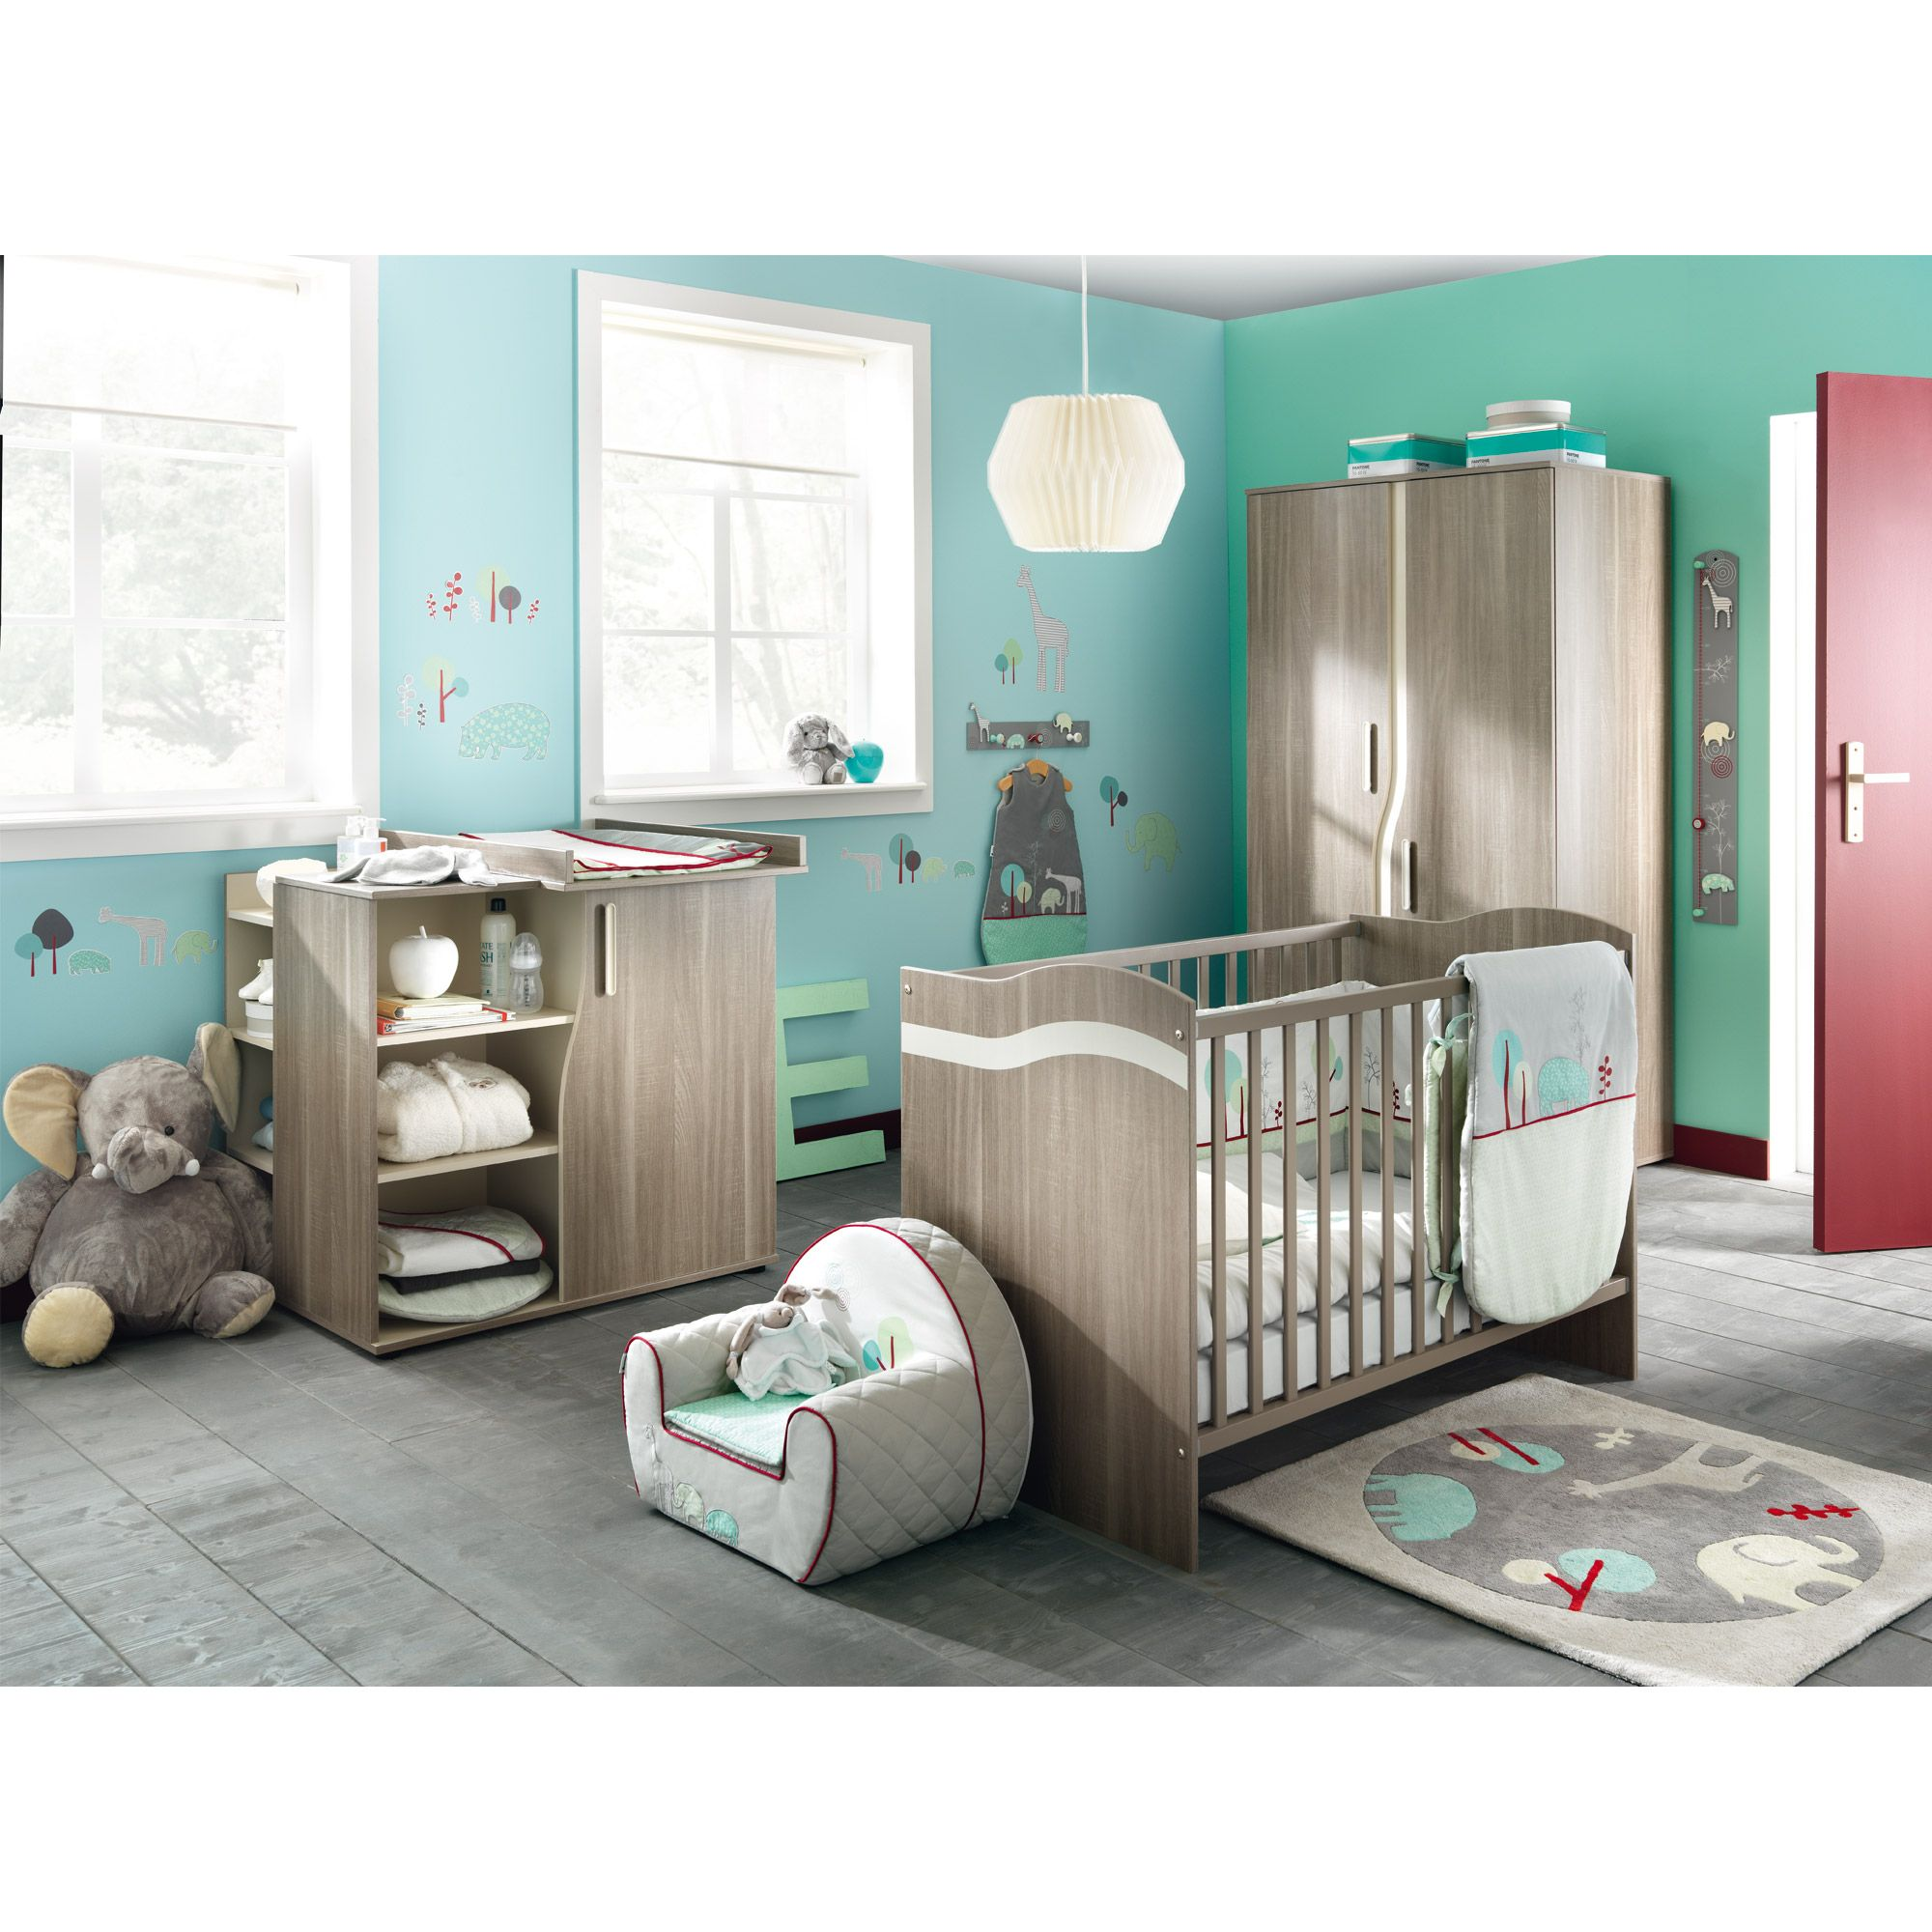 Epingle Sur Special Bebe Idee Deco Chambres Ect